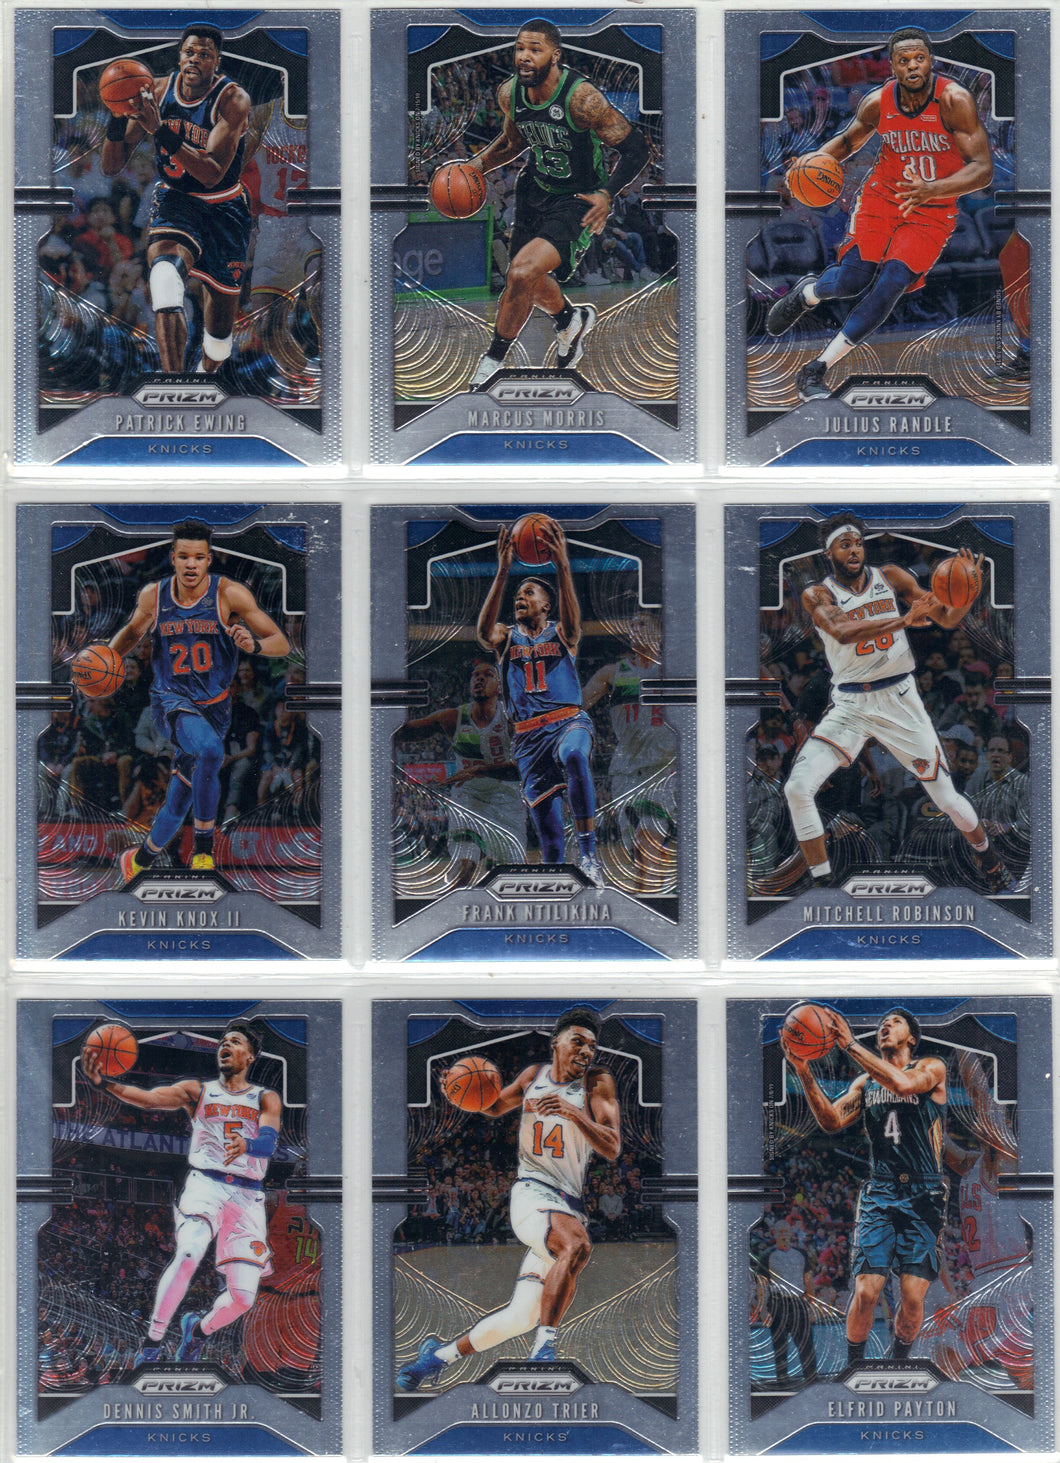 2019-20 Prizm New York Knicks NBA Basketball Cards Team Set